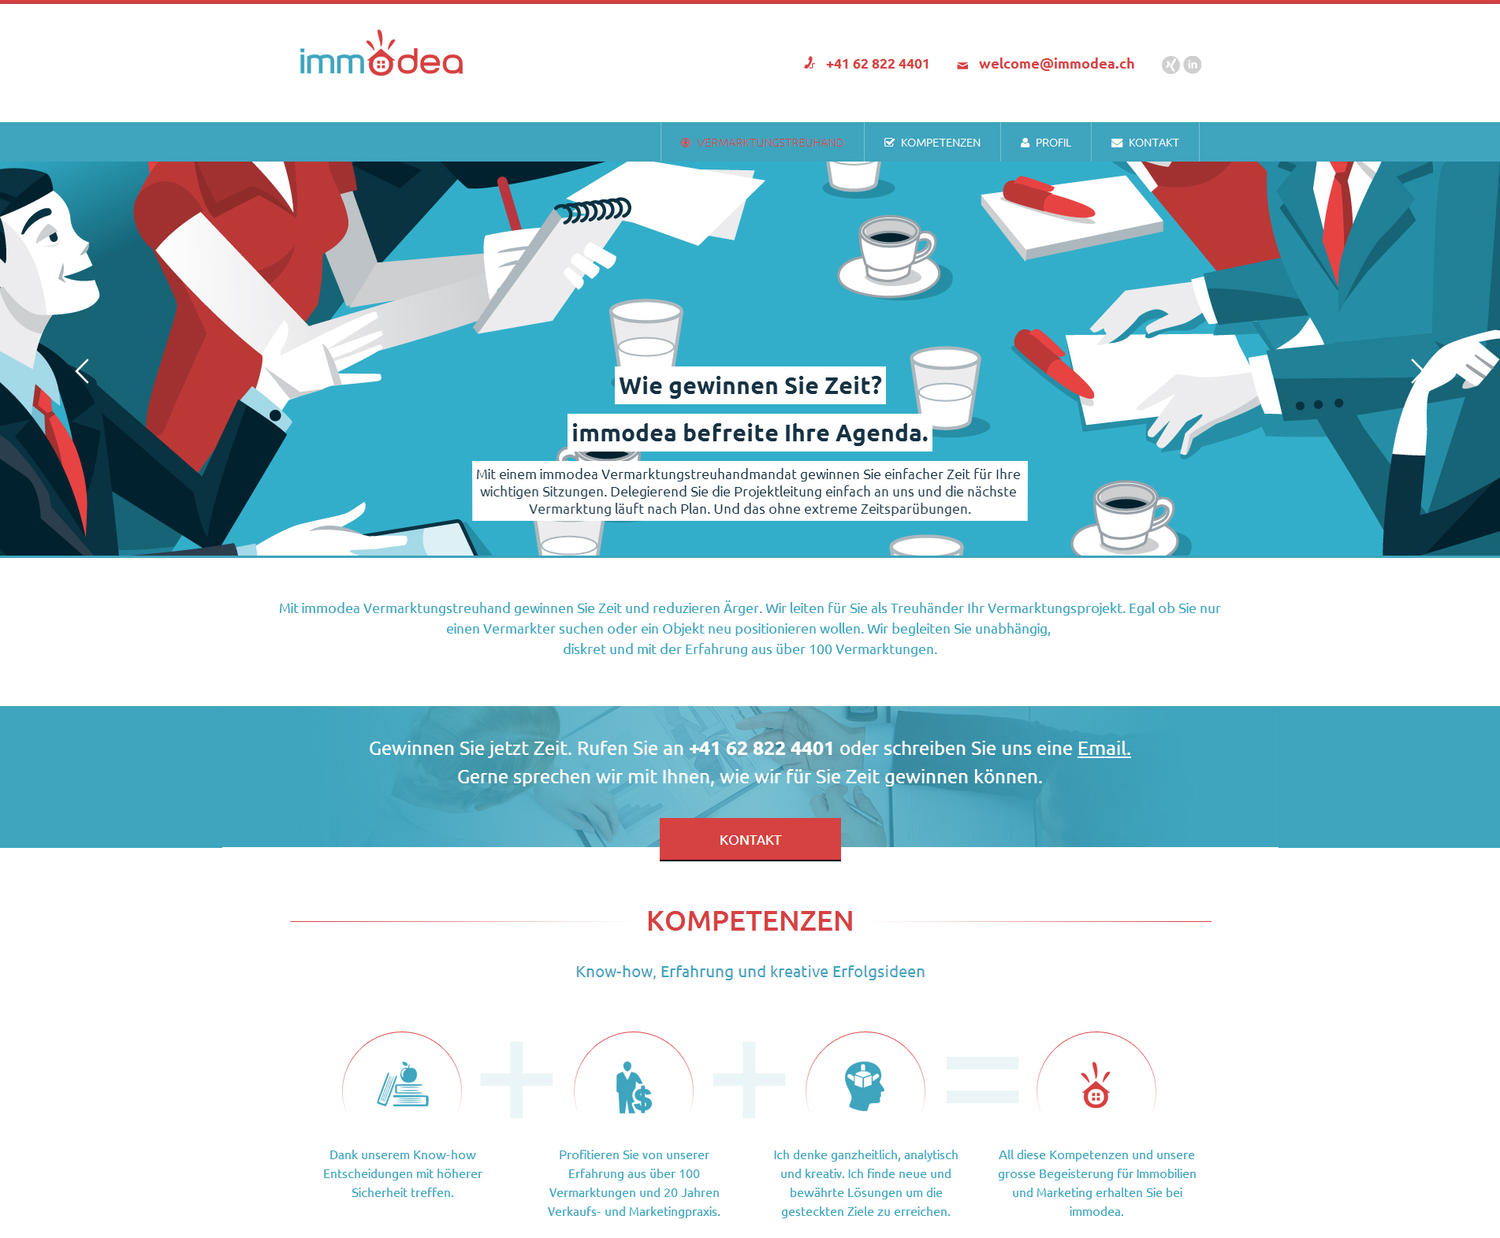 PSD to Responsive Wordpress by superhero - 89418